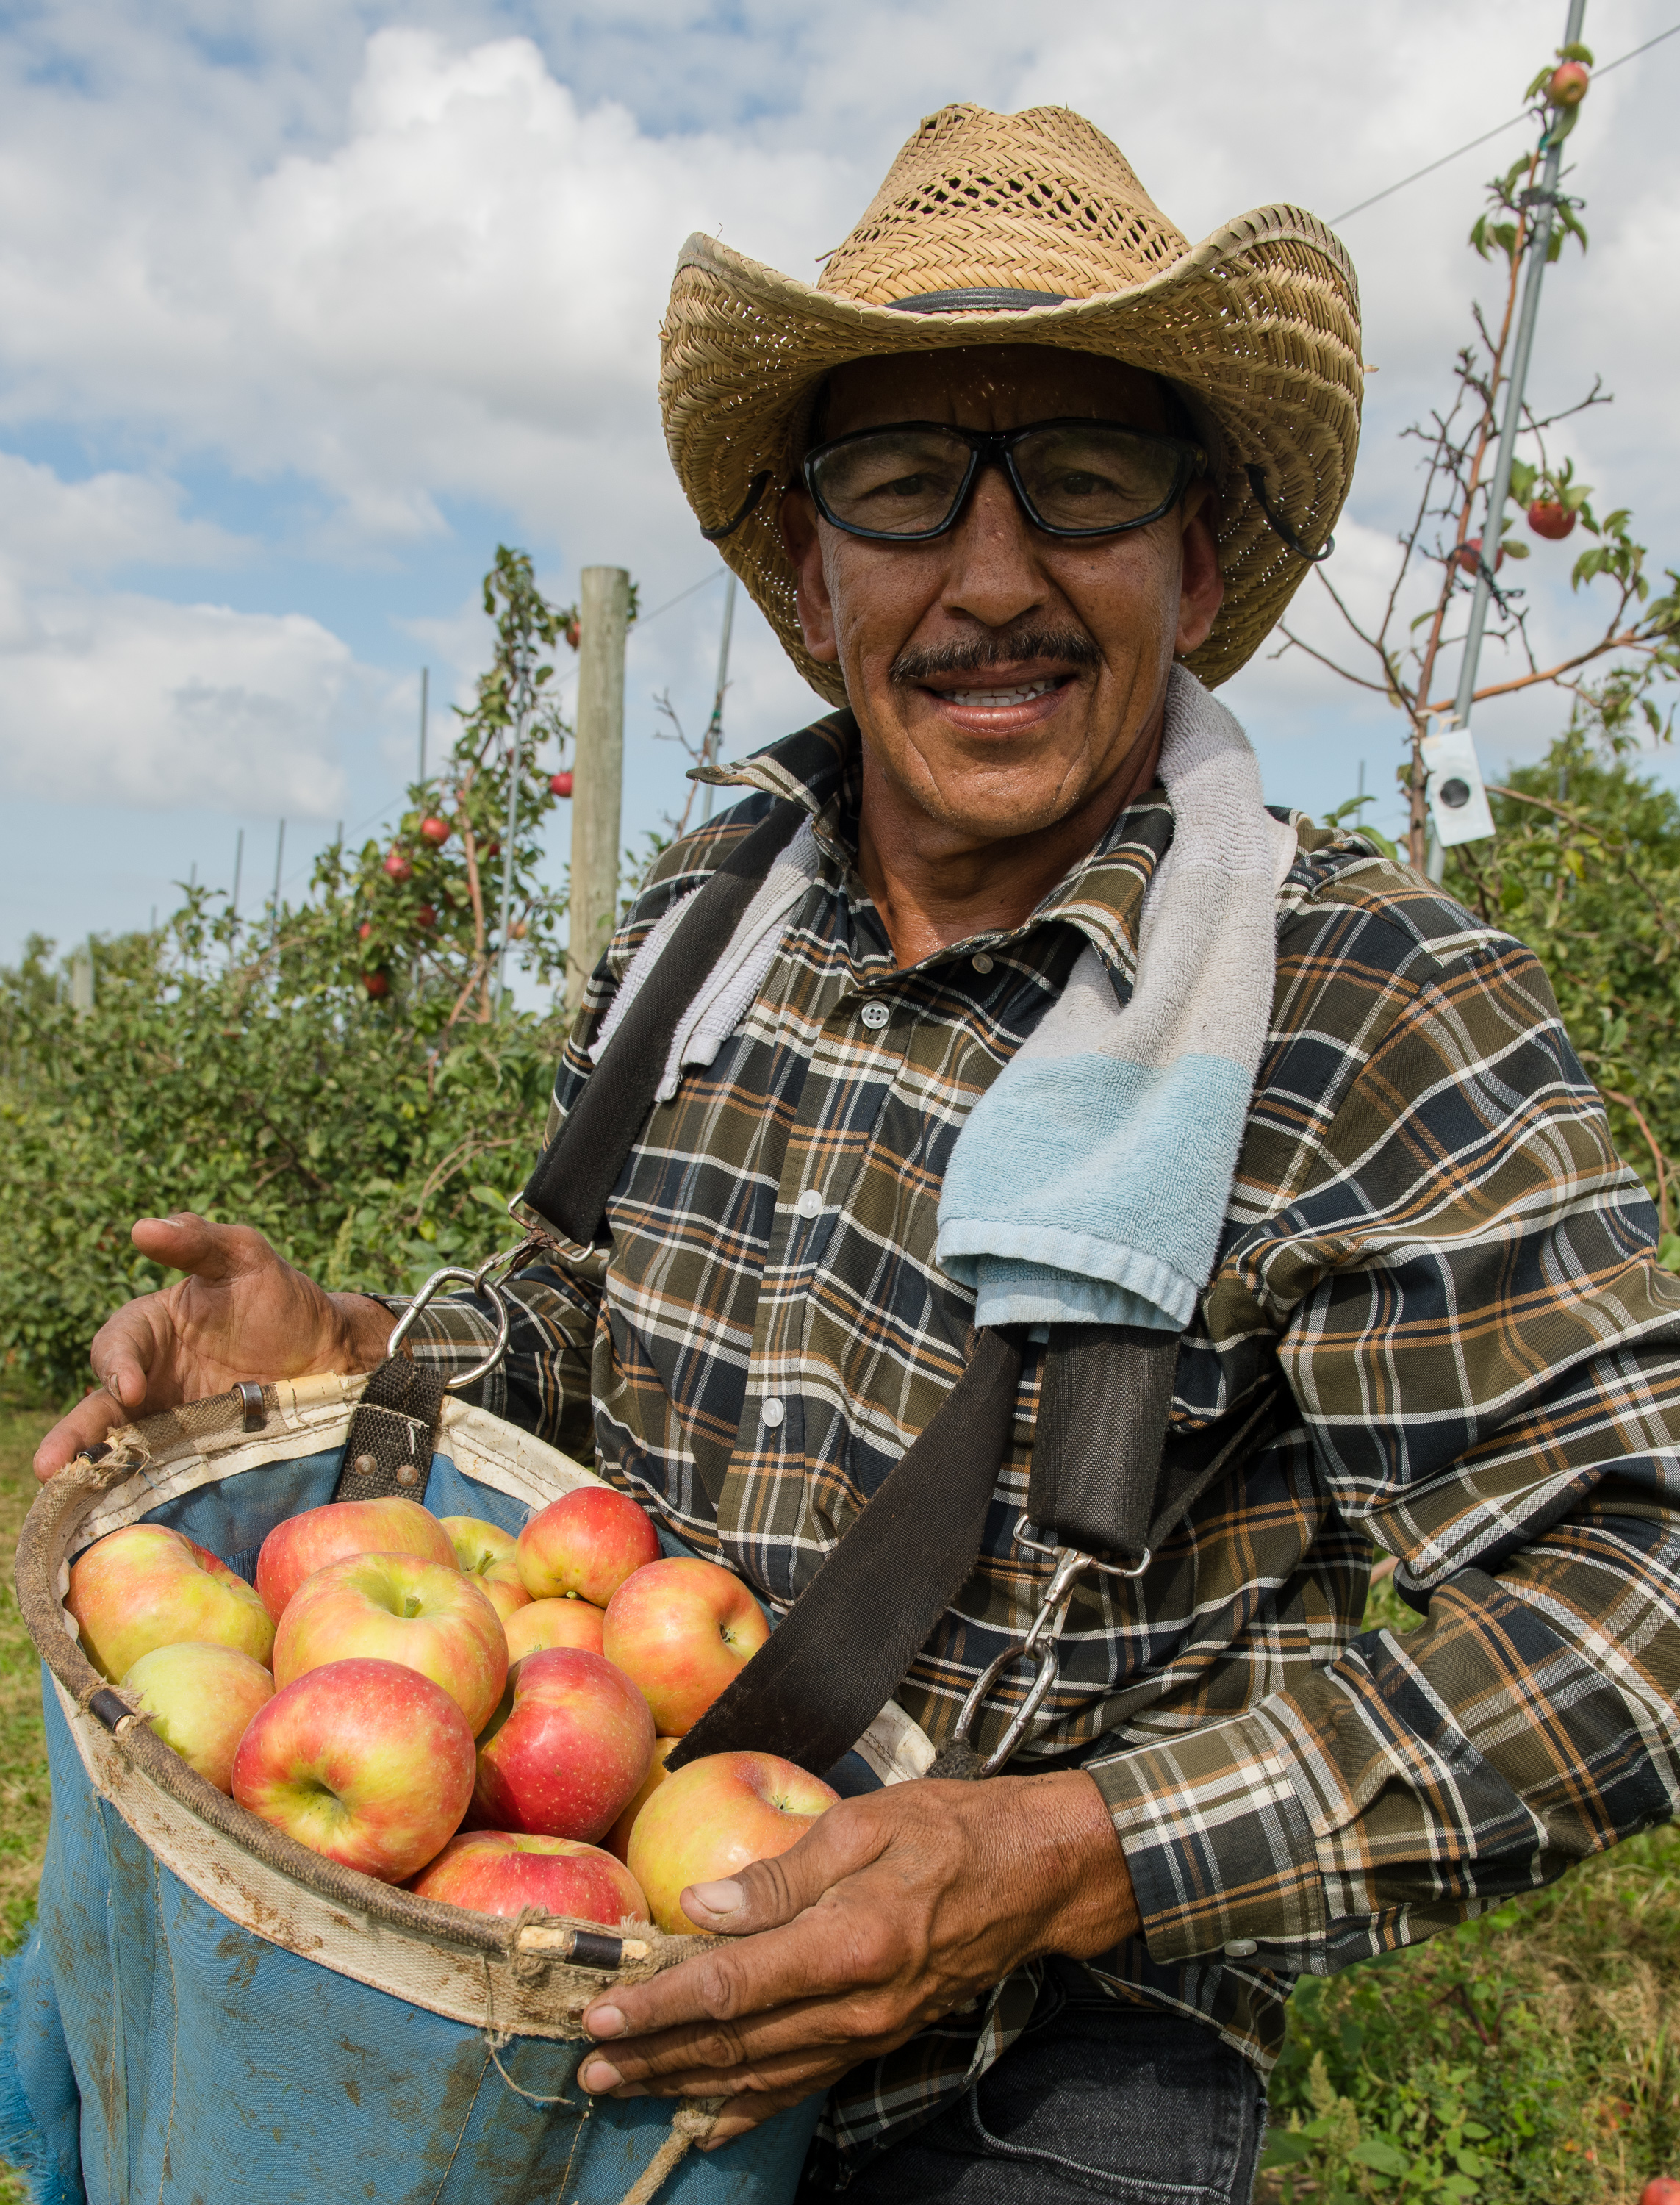 All apples grown at Center Grove Orchard are harvested by hand and sold in the store on site. Photo credit: Joseph L. Murphy/Iowa Soybean Association